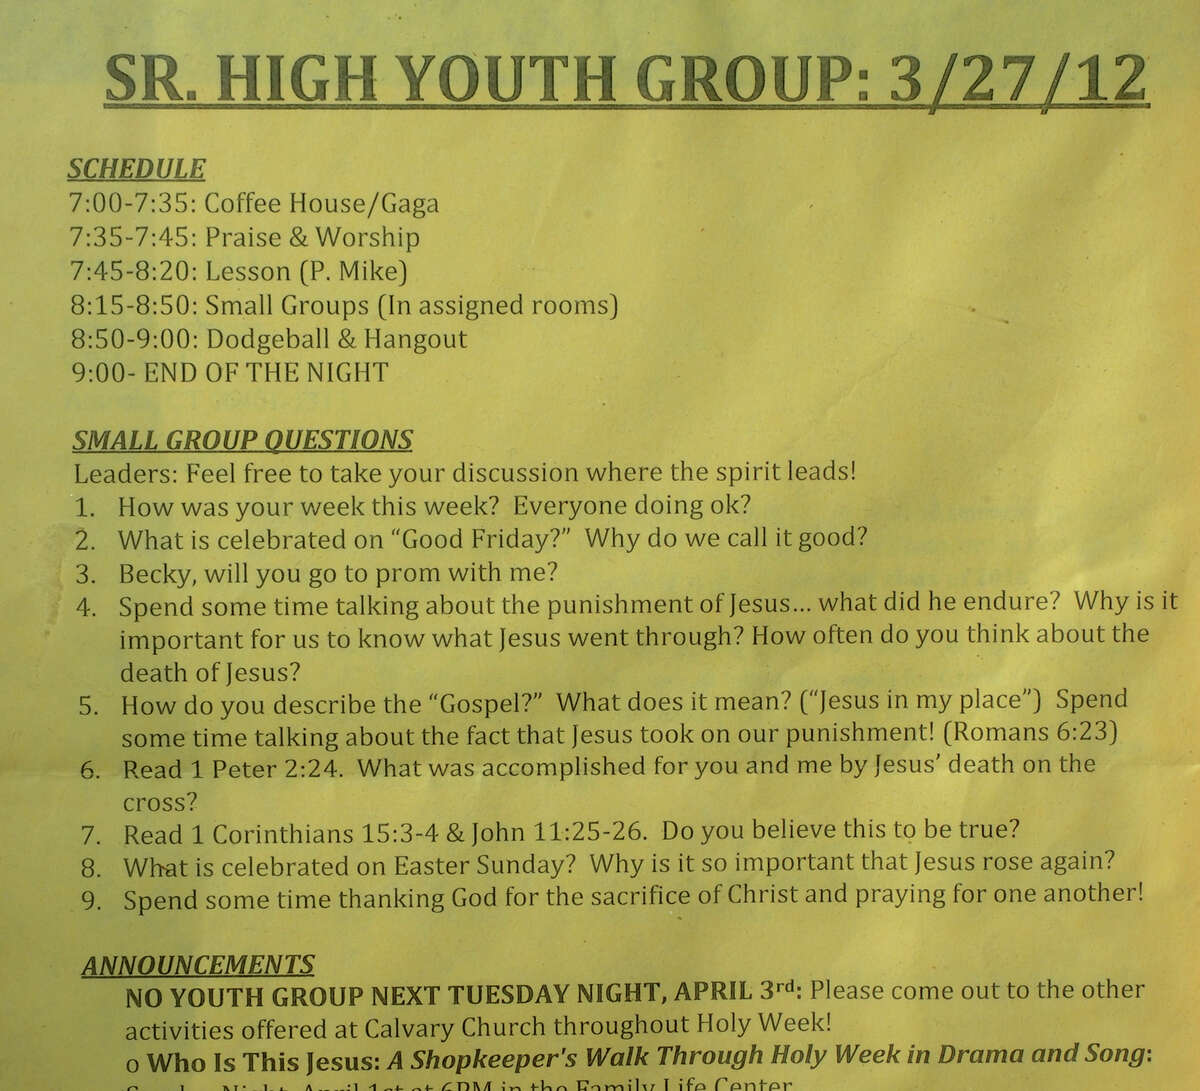 This is the rules list from Becky Schwarz high school youth group seen at her home in Ansonia, Conn. on Thursday April 19, 2012. Becky's friend Ben Huebner had rule #3 printed asking her to the prom as a surprise.